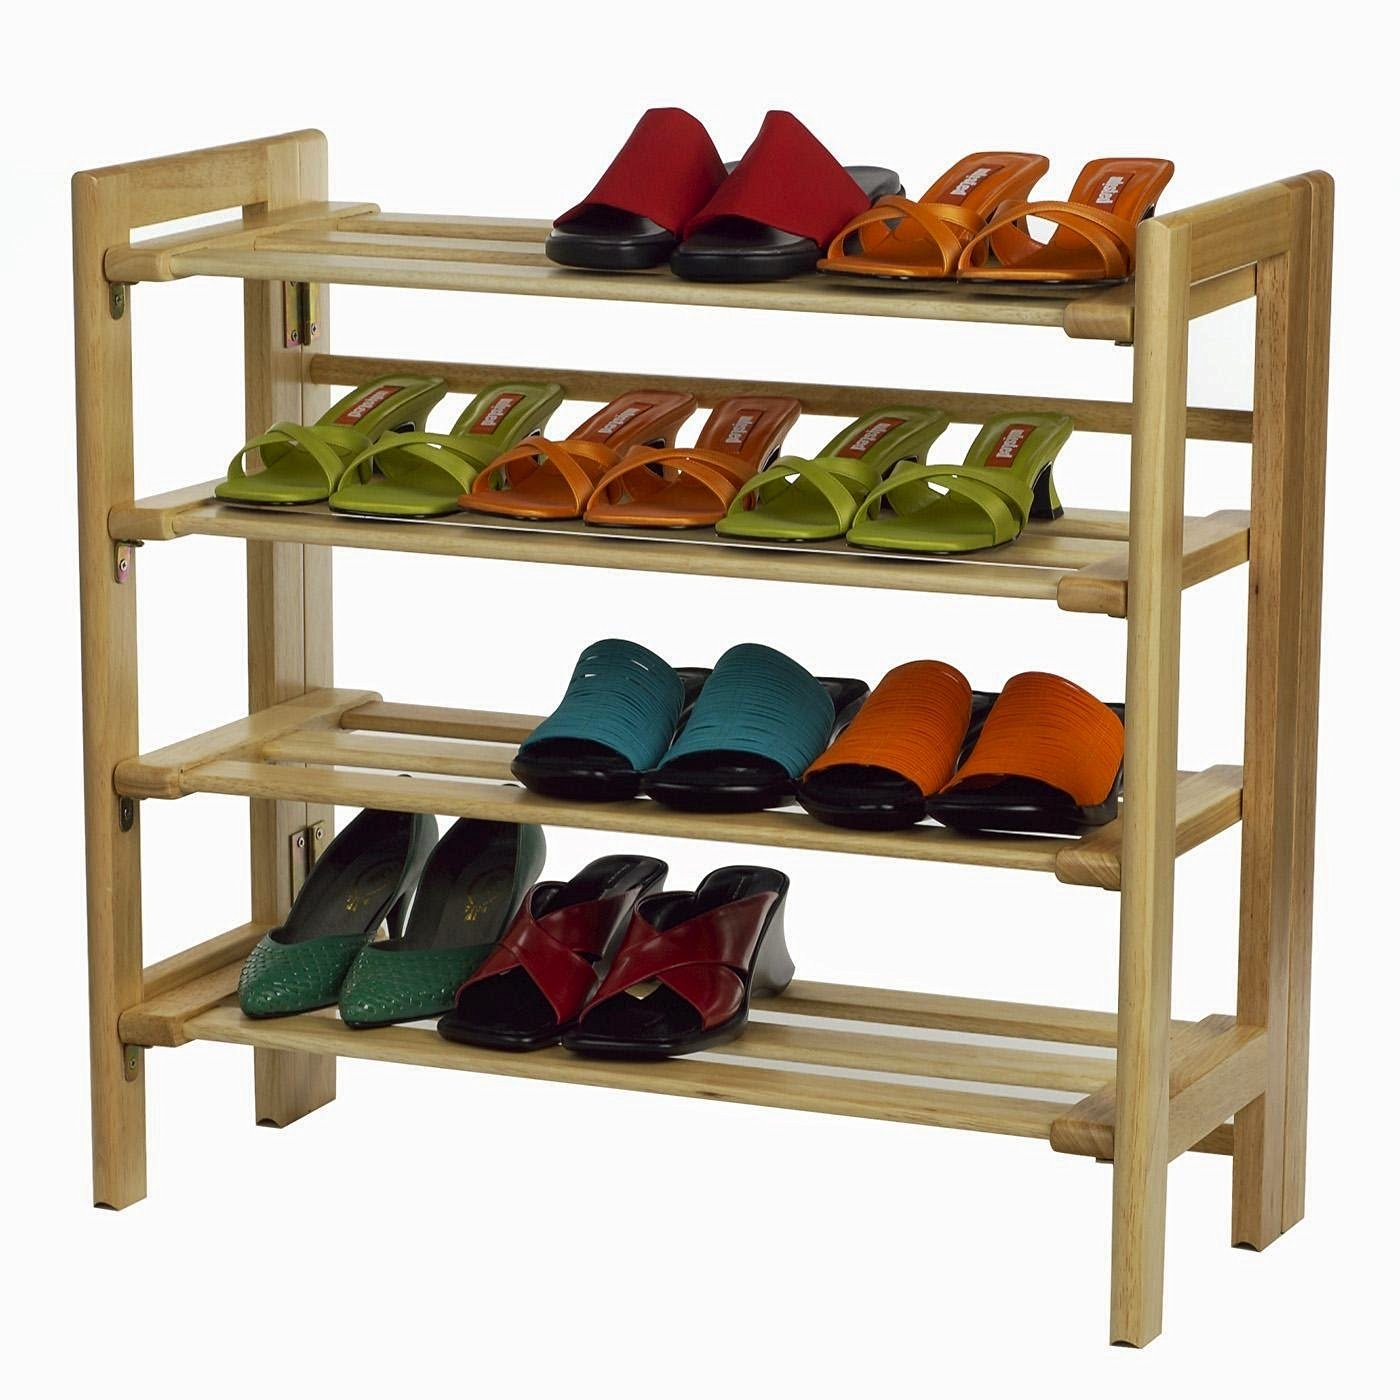 bench shoe rack percent storage bamboo natural products shelf amazon cheap kitchen home choice dp best com organizer boot hallway